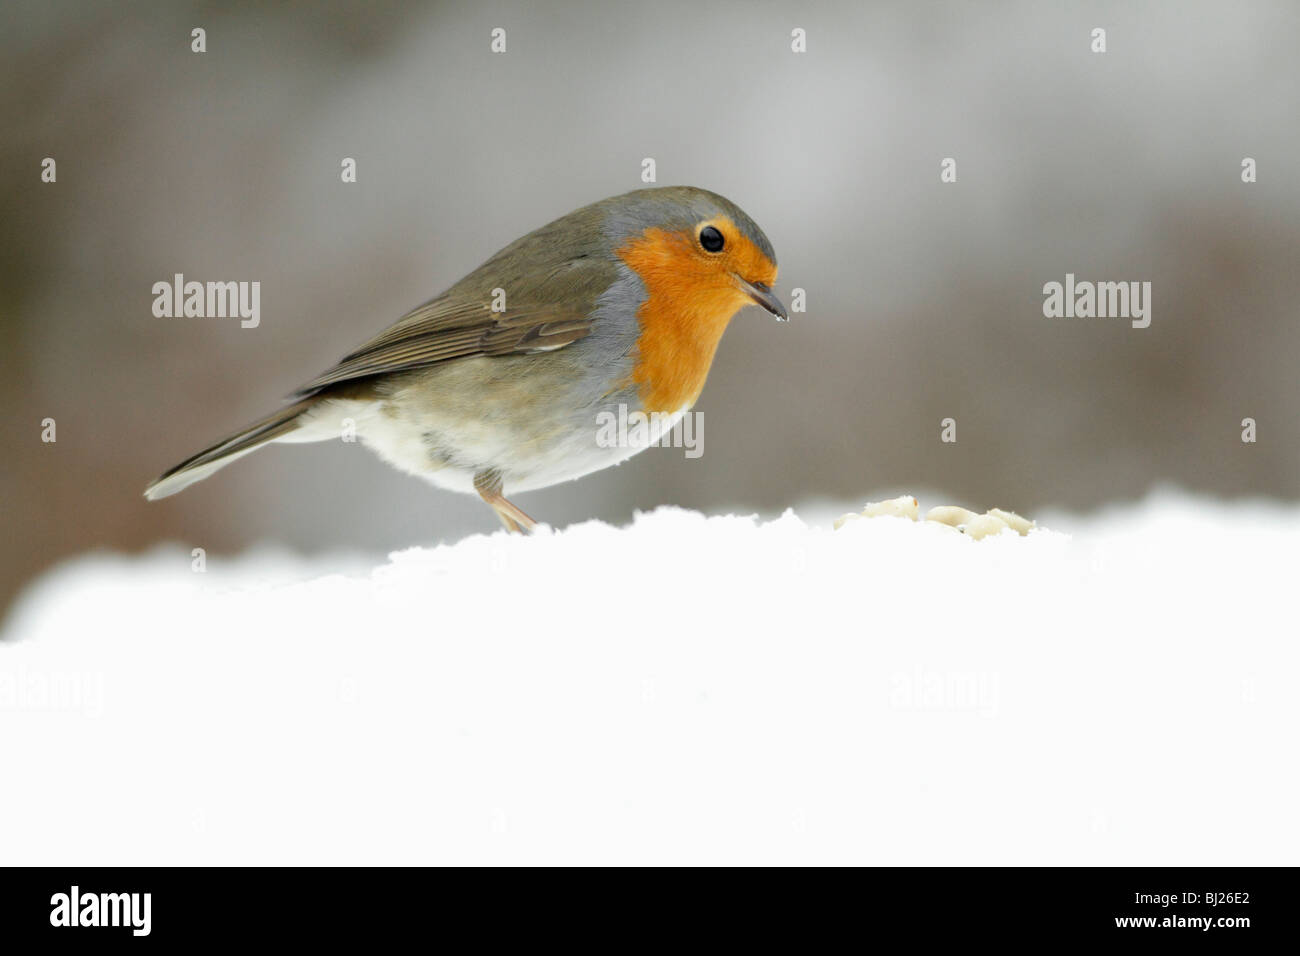 European Robin, Erithacus rubecula, searching for food in garden, in winter, Germany - Stock Image